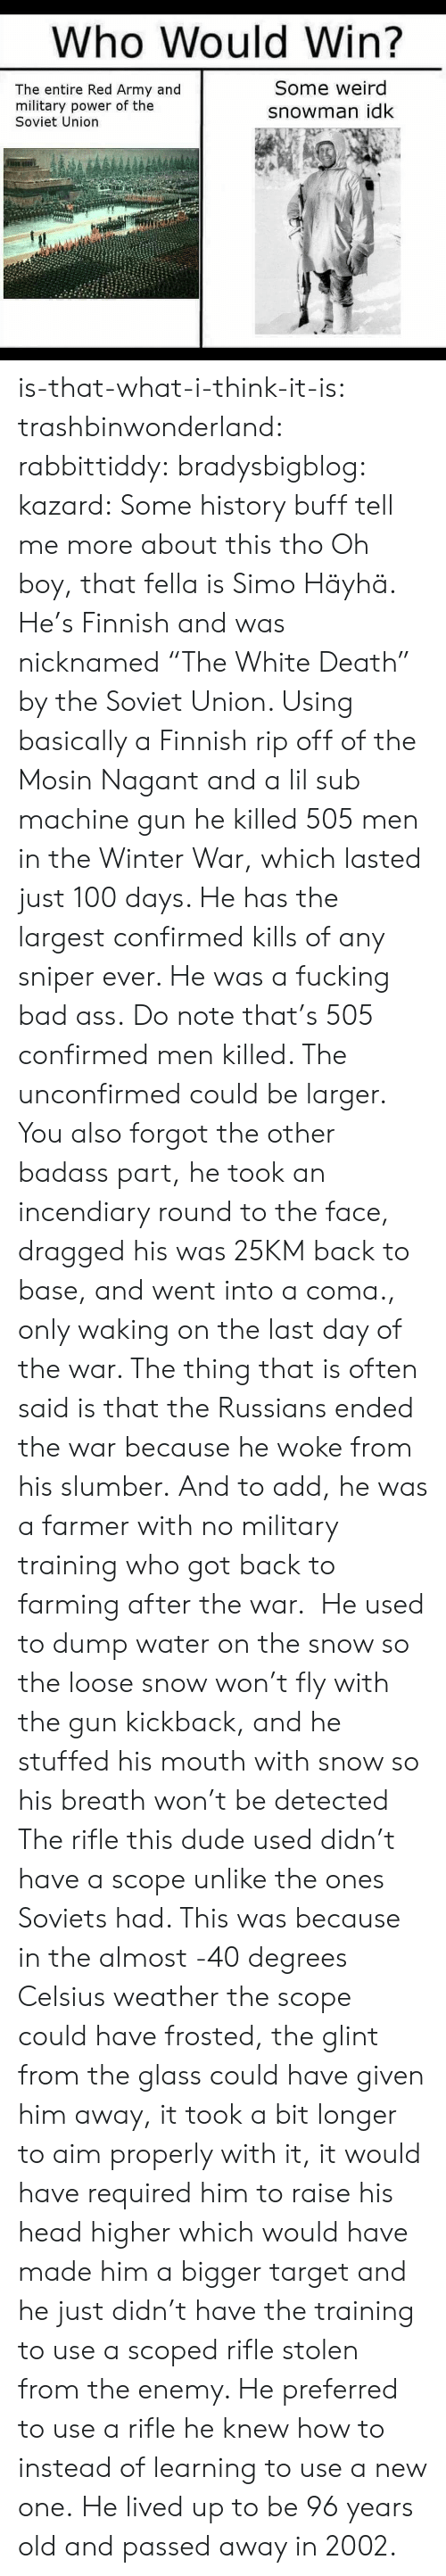 """Breathed: Who WouldWin?  The entire Red Army and  military power of the  Soviet Union  Some weird  snowman idk is-that-what-i-think-it-is:  trashbinwonderland:  rabbittiddy:  bradysbigblog:   kazard:  Some history buff tell me more about this tho  Oh boy, that fella is Simo Häyhä. He's Finnish and was nicknamed """"The White Death"""" by the Soviet Union. Using basically a Finnish rip off of the Mosin Nagant and a lil sub machine gun he killed 505 men in the Winter War, which lasted just 100 days. He has the largest confirmed kills of any sniper ever. He was a fucking bad ass.   Do note that's 505 confirmed men killed. The unconfirmed could be larger. You also forgot the other badass part, he took an incendiary round to the face, dragged his was 25KM back to base, and went into a coma., only waking on the last day of the war. The thing that is often said is that the Russians ended the war because he woke from his slumber.  And to add, he was a farmer with no military training who got back to farming after the war. He used to dump water on the snow so the loose snow won't fly with the gun kickback, and he stuffed his mouth with snow so his breath won't be detected  The rifle this dude used didn't have a scope unlike the ones Soviets had. This was because in the almost -40 degrees Celsius weather the scope could have frosted, the glint from the glass could have given him away, it took a bit longer to aim properly with it, it would have required him to raise his head higher which would have made him a bigger target and he just didn't have the training to use a scoped rifle stolen from the enemy. He preferred to use a rifle he knew how to instead of learning to use a new one. He lived up to be 96 years old and passed away in 2002."""